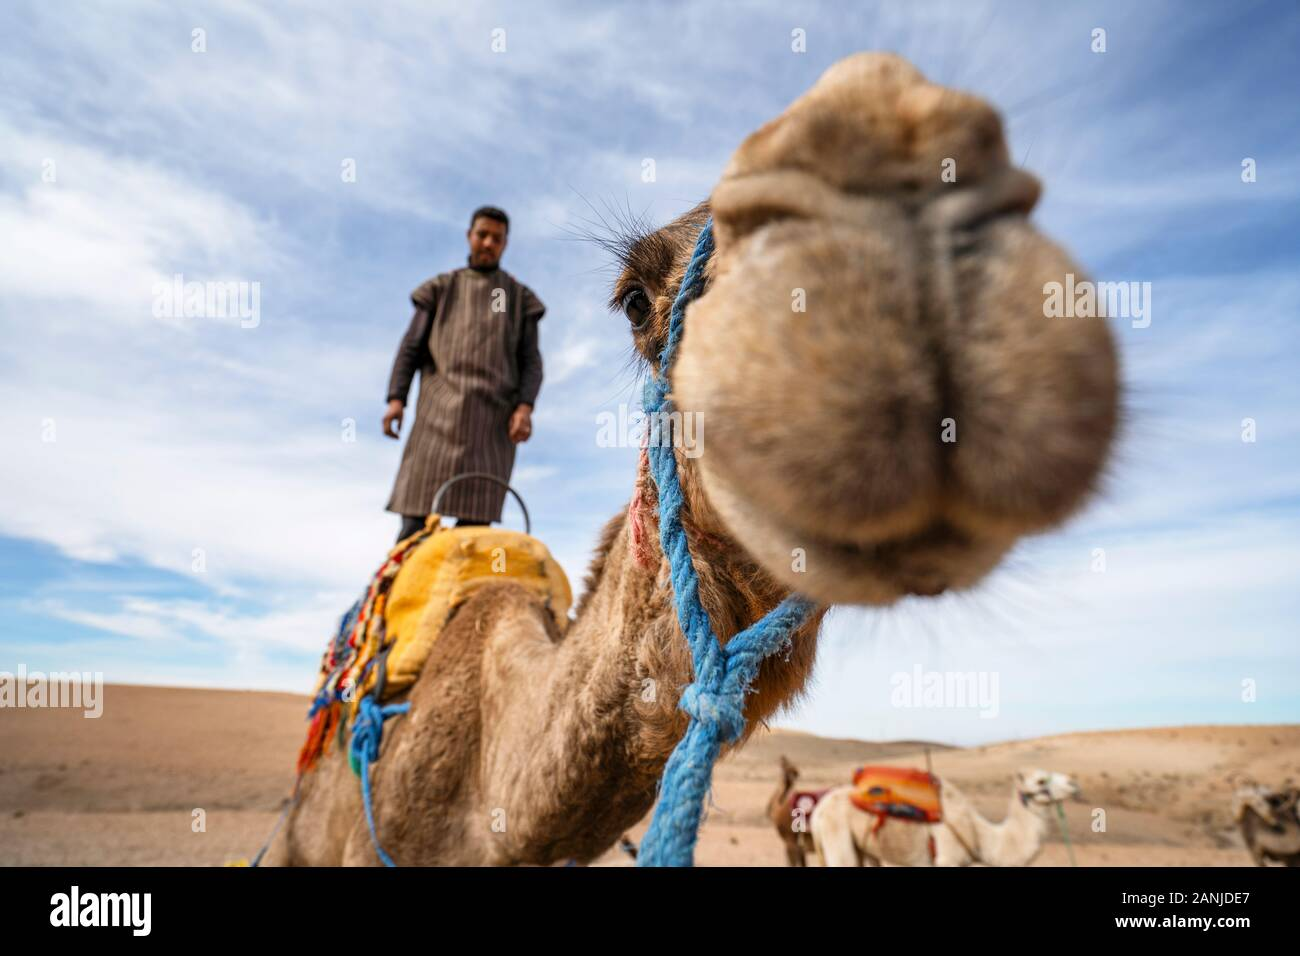 Marrakech, Morocco - January 14, 2010: A man standing on his dromedary camel to show off on Agafay desert , Marrakech, Morocco Stock Photo